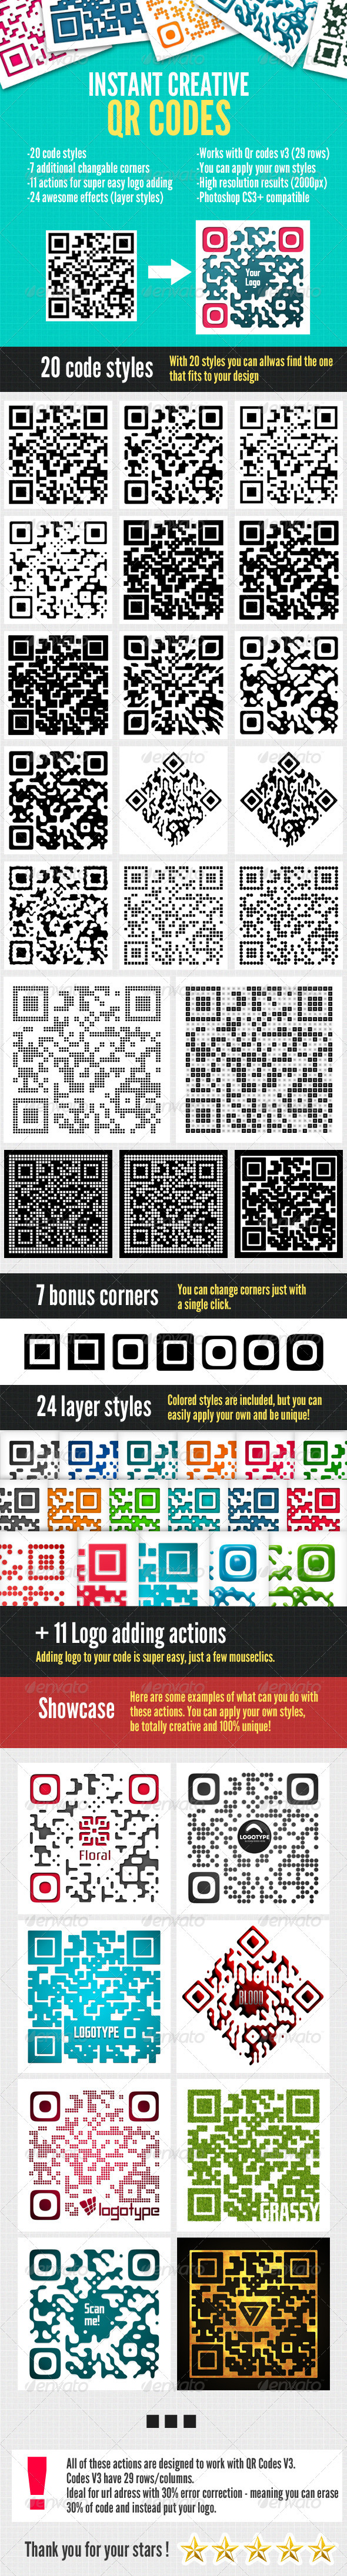 GraphicRiver Instant QR Code Designs Photoshop Actions 3574529